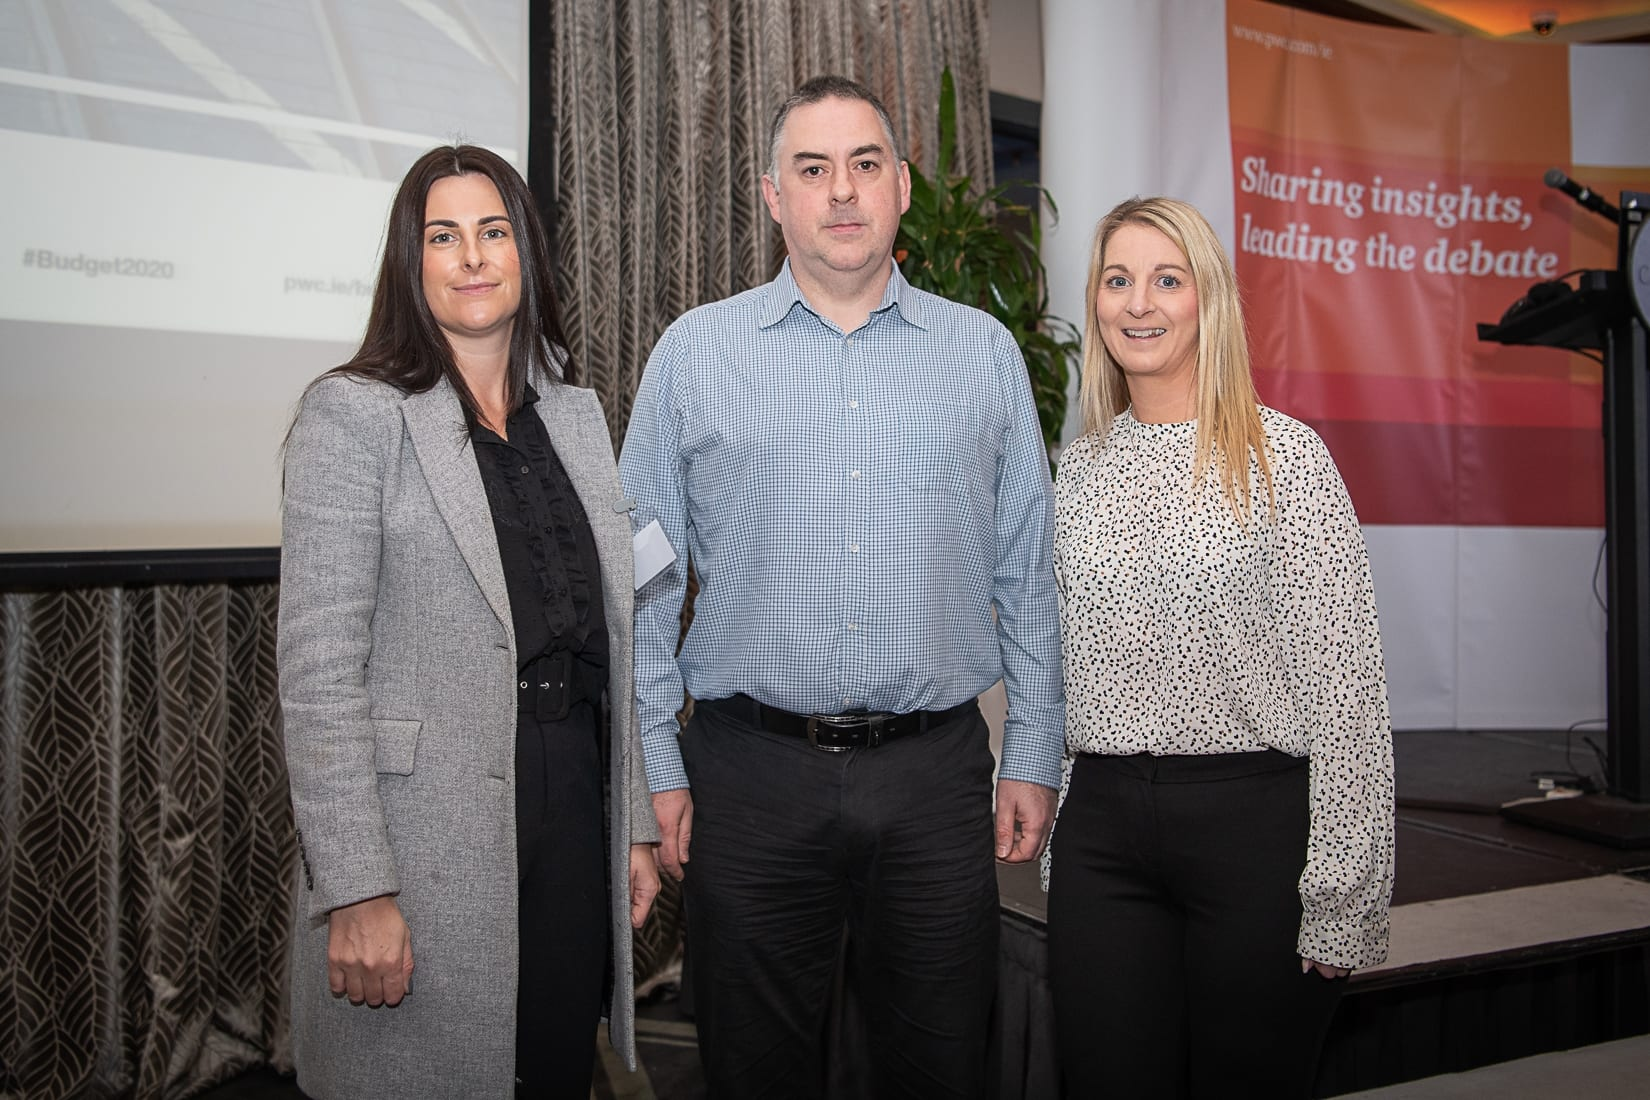 PWC Budget Breakfast in association with the Limerick Chamber which took place in the Castletroy Park Hotel on 9th October 2019, from left to right: Laura Pond- Permanent TSB, Rory Kirwan - Jaguar Land Rover, Noelle O'Shea - Permanent TSB. Photo by Morning Star Photography